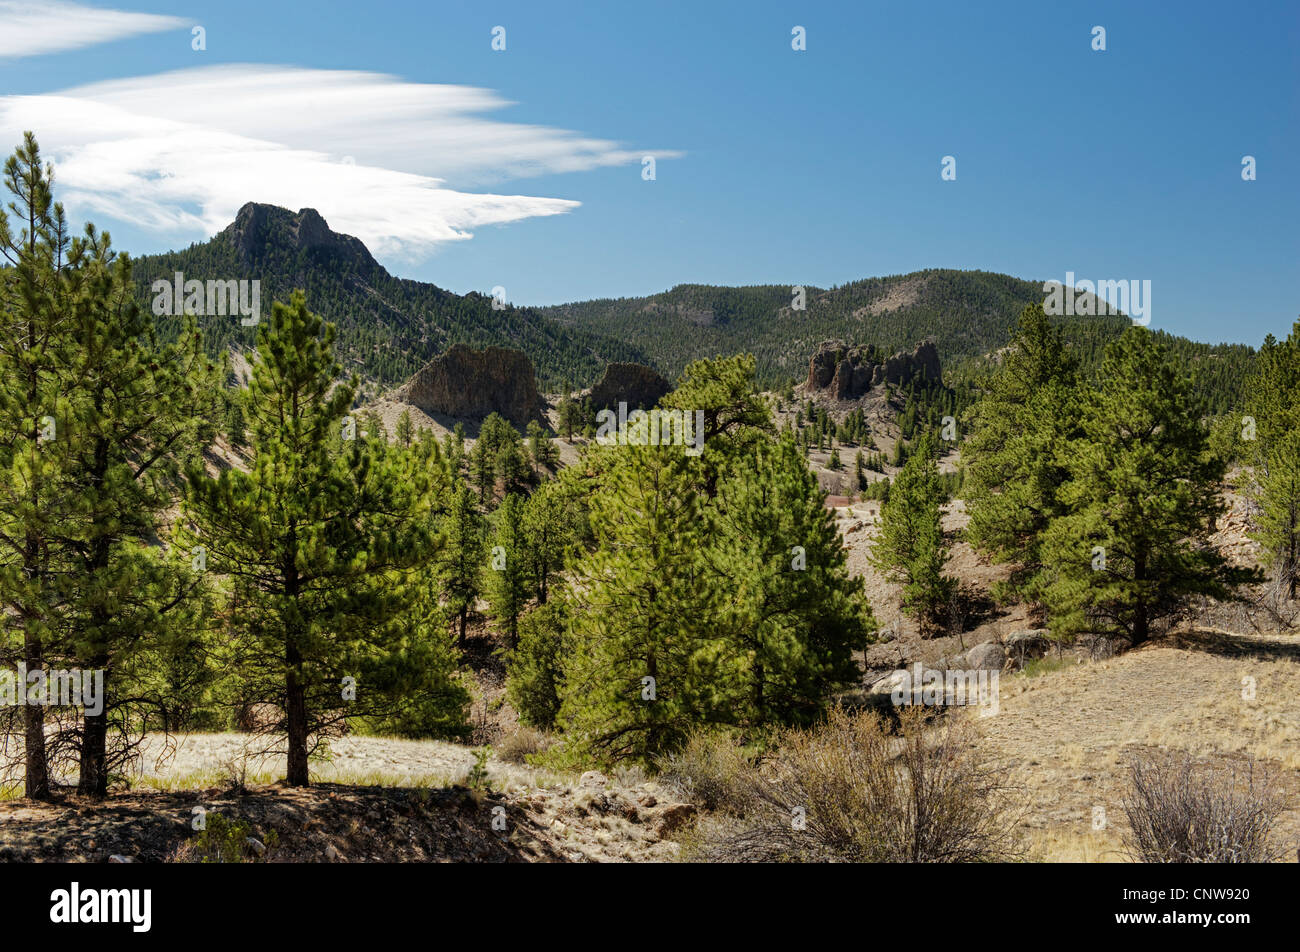 The Castles, as seen from US 285 between Fairplay and Buena Vista Colorado - Stock Image